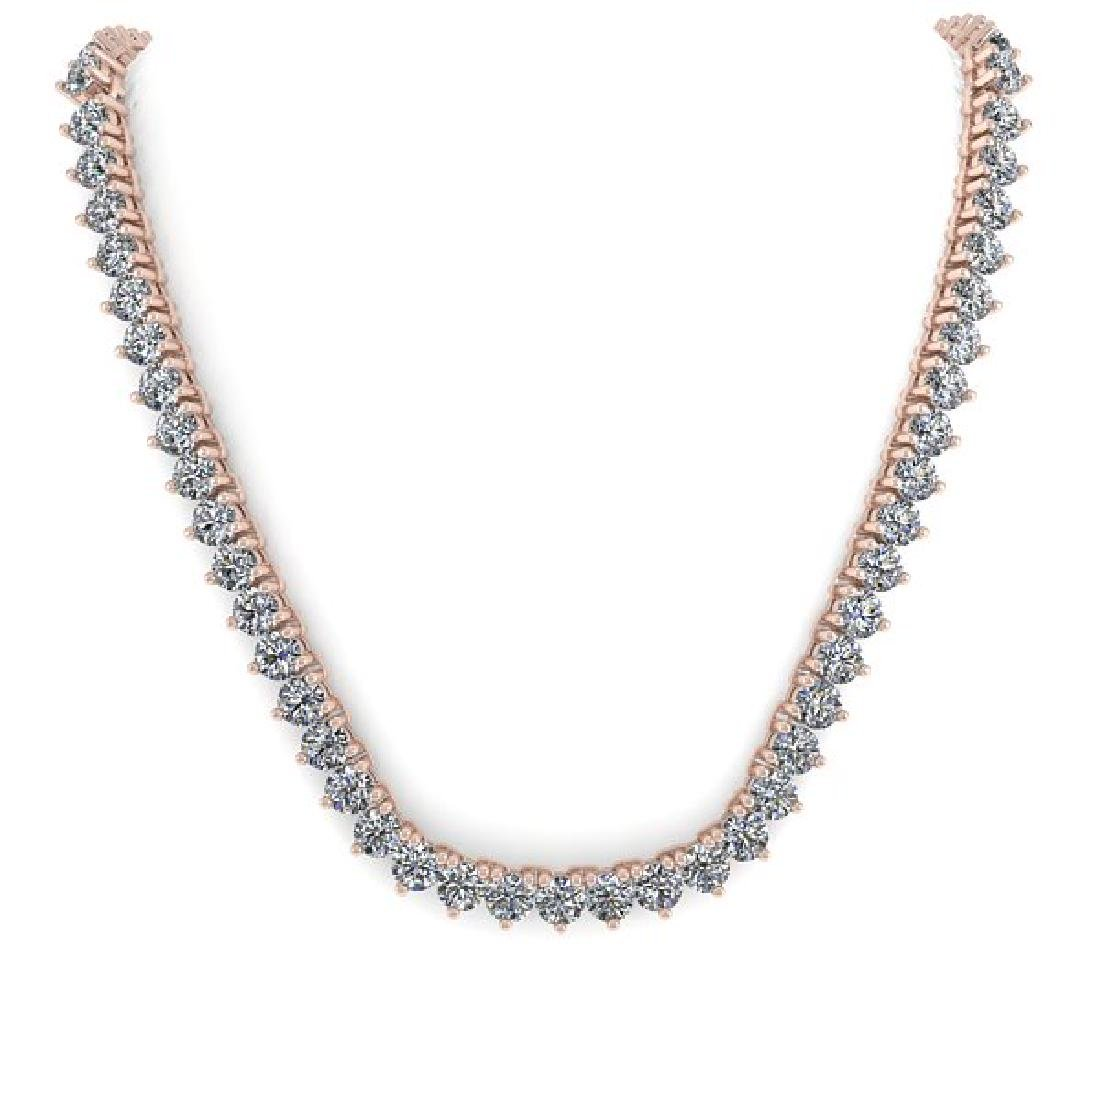 65 CTW Solitaire Certified SI Diamond Necklace 14K Rose - 3